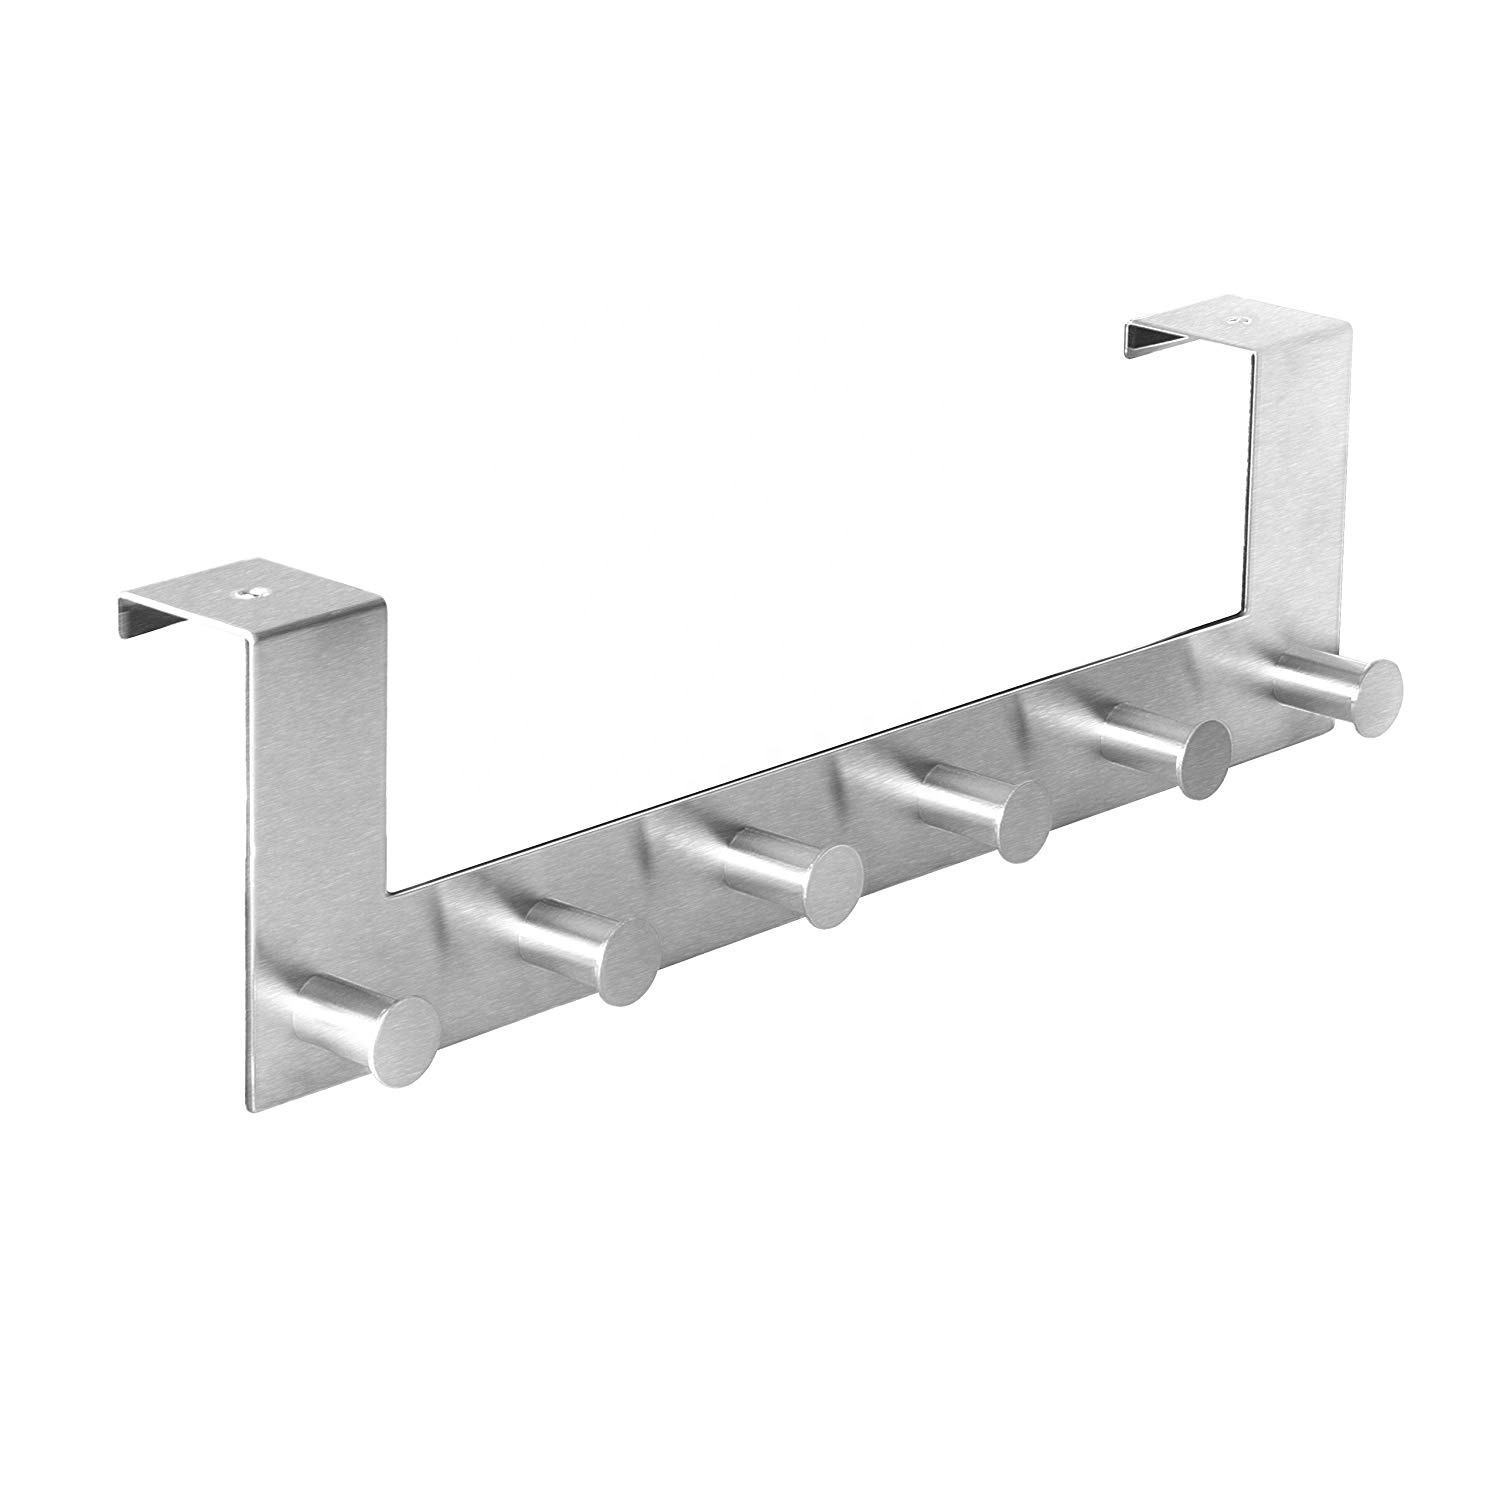 Factory Stainless Steel Door Hook Towel Rack Kitchen Cabinet Cupboard Hanging Rack Hat Clothes Coat Cloth Over The Door Hook